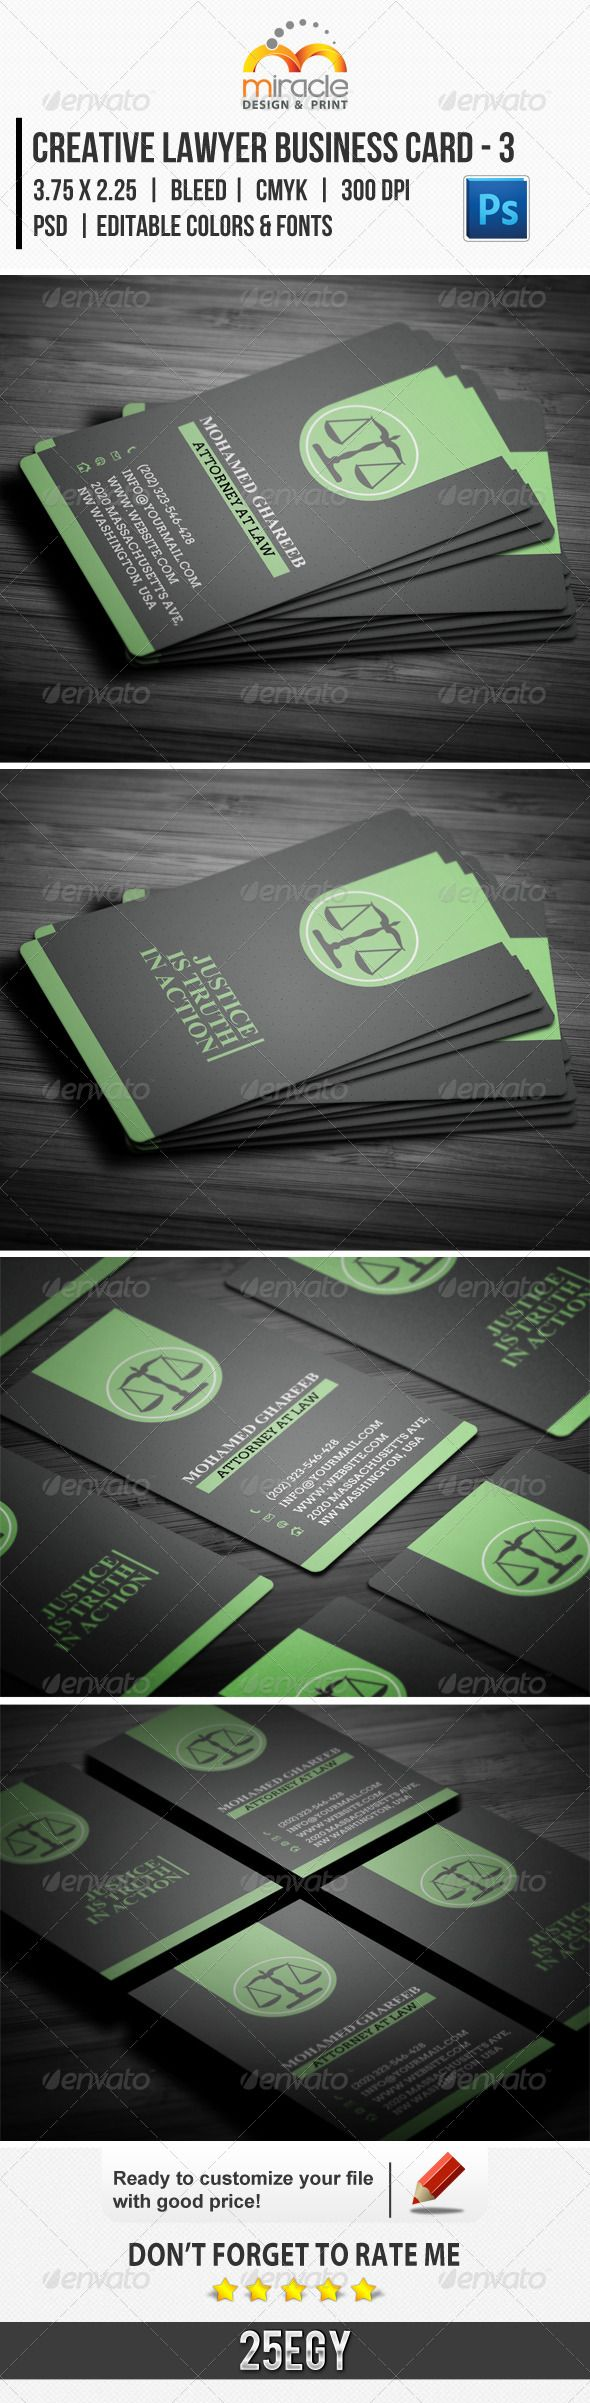 Creative lawyer business card 3 business cards edit text and creative lawyer business card 3 graphicriver creative lawyer business card 3 creative and clean lawyer business card editable text layers or colors colourmoves